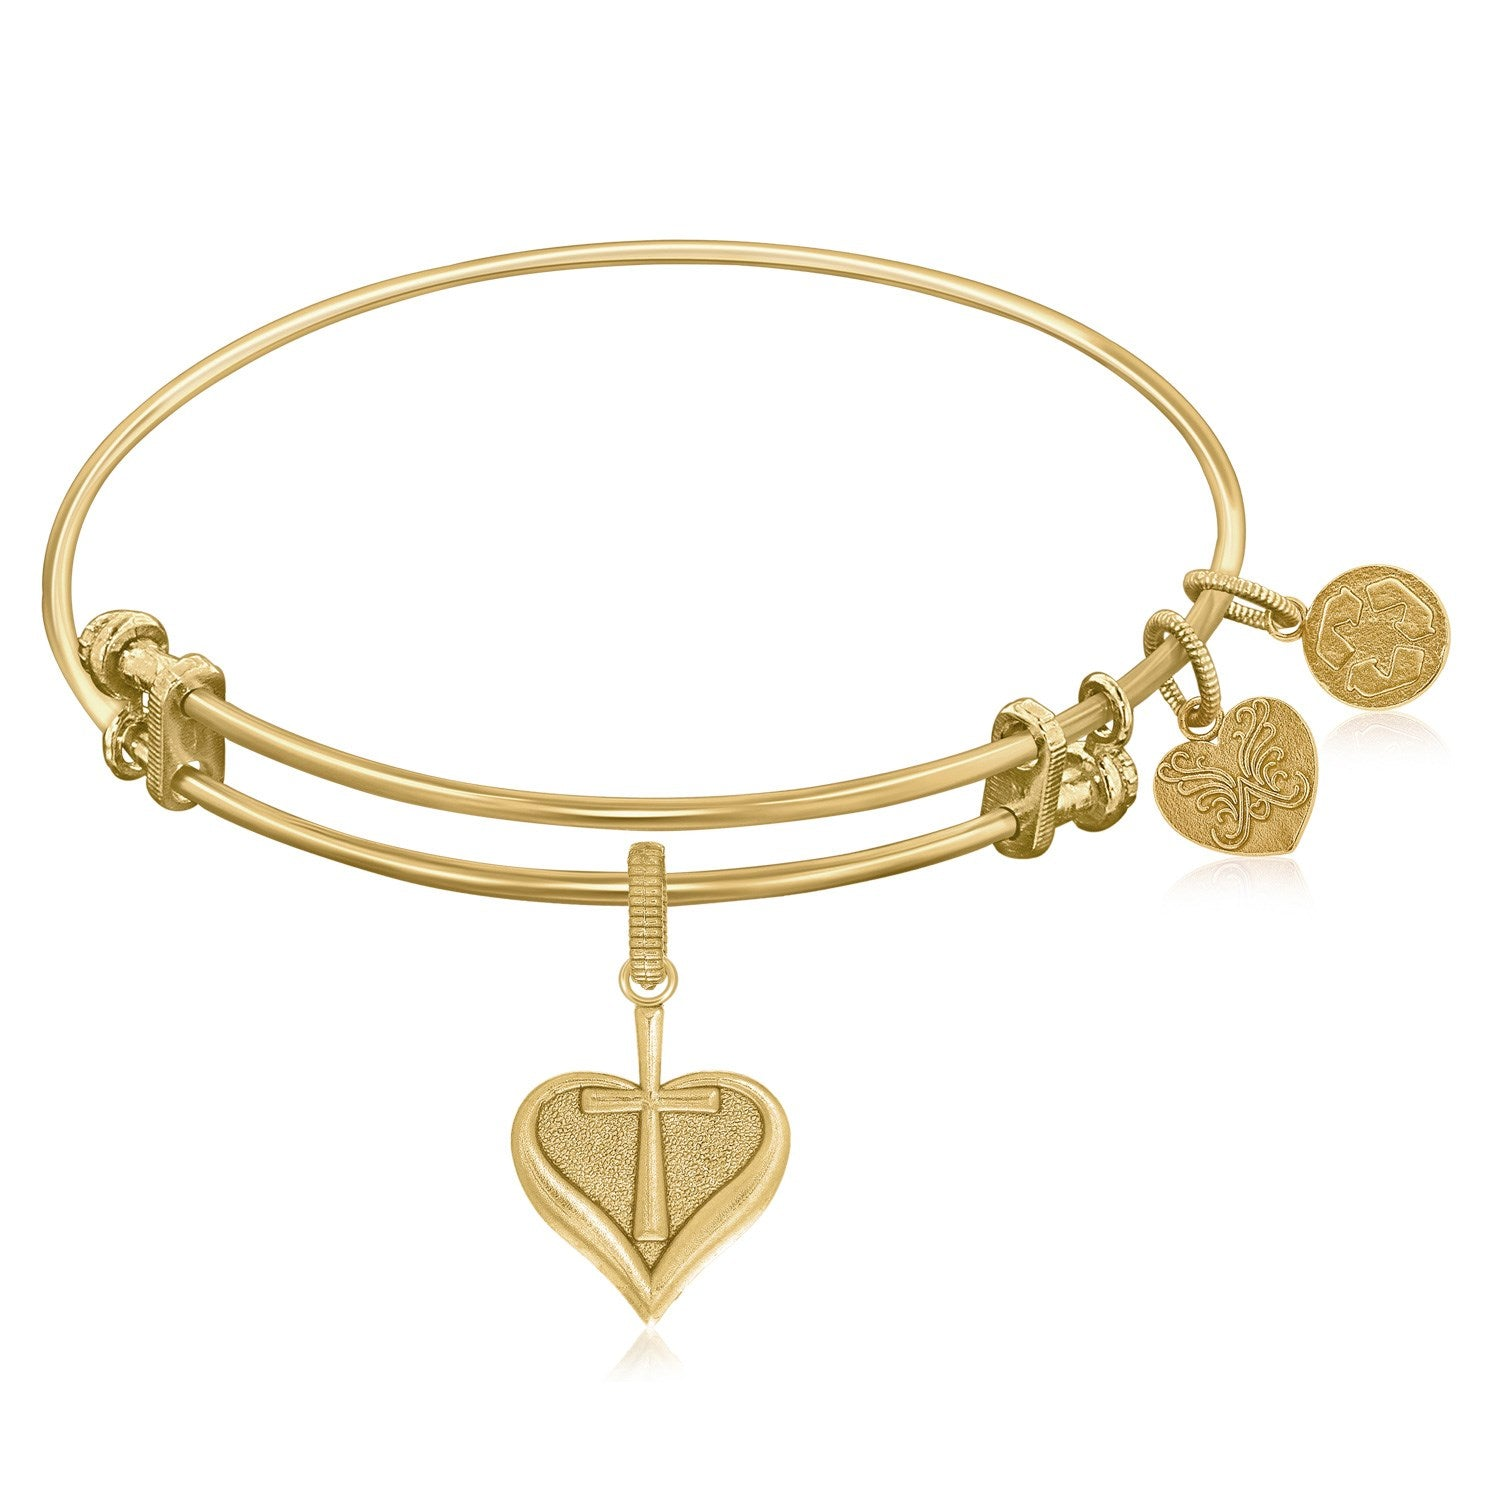 Expandable Bangle in Yellow Tone Brass with Heart With Cross Symbol